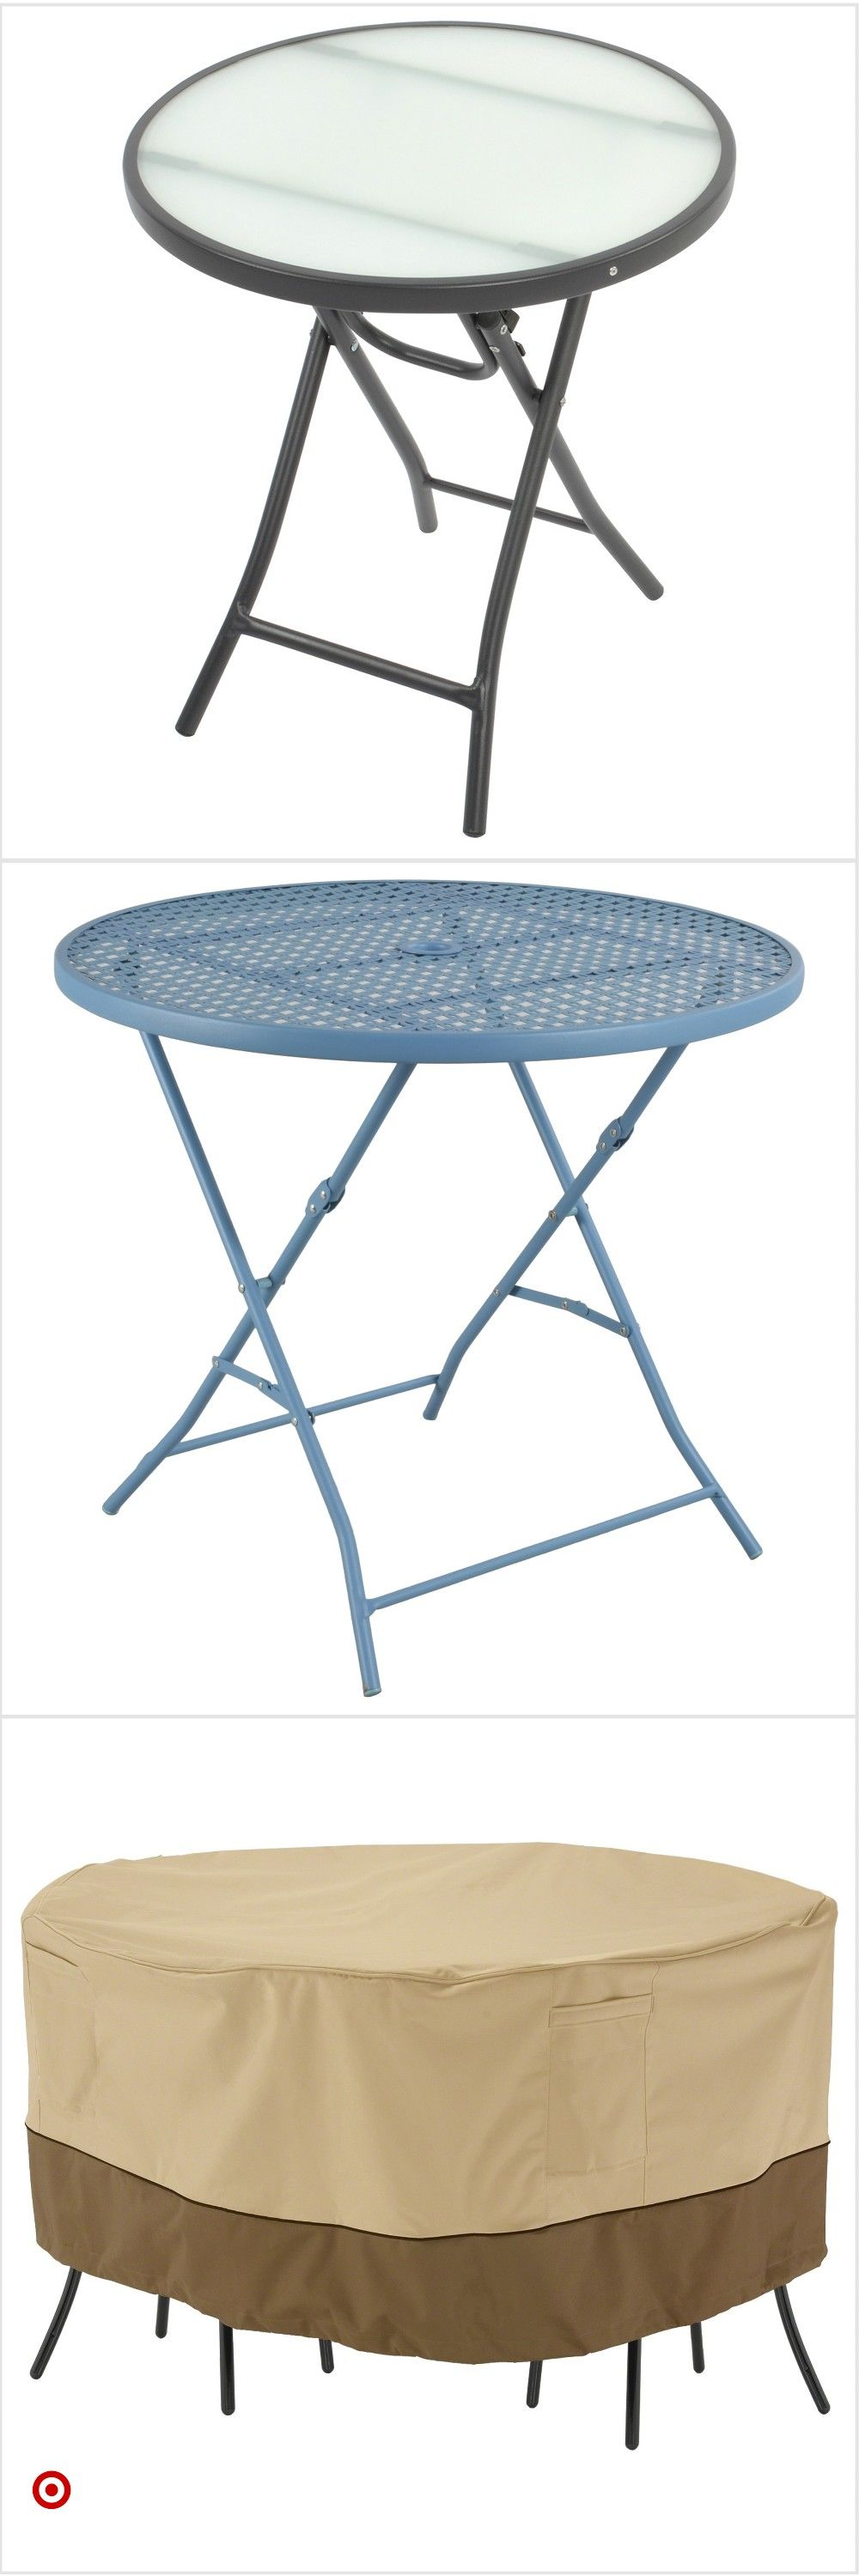 shop target for patio bistro table you will love at great low rh pinterest com